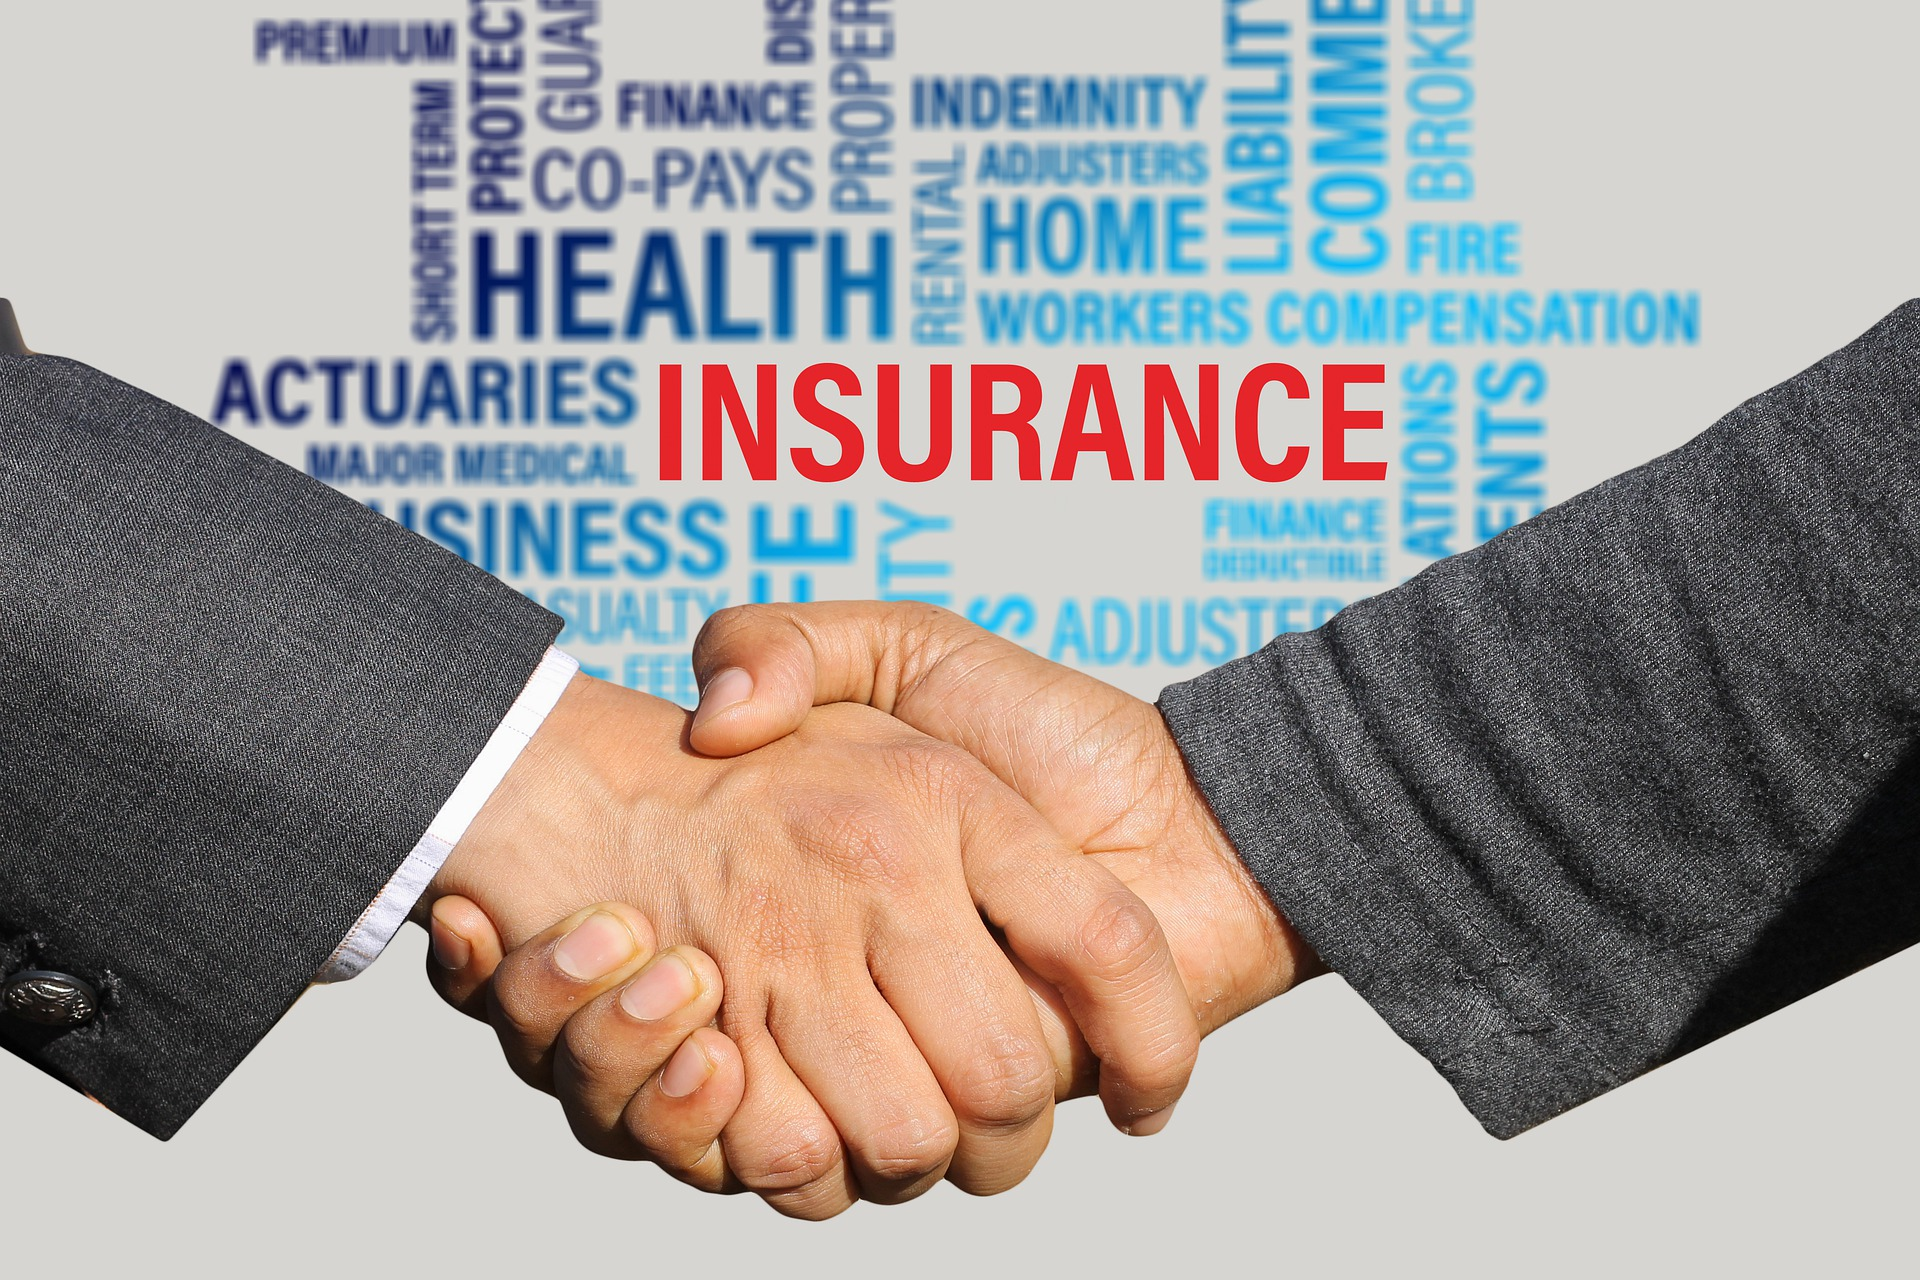 small business insurance - insurance! hand shake in front, the background has words home insurance health